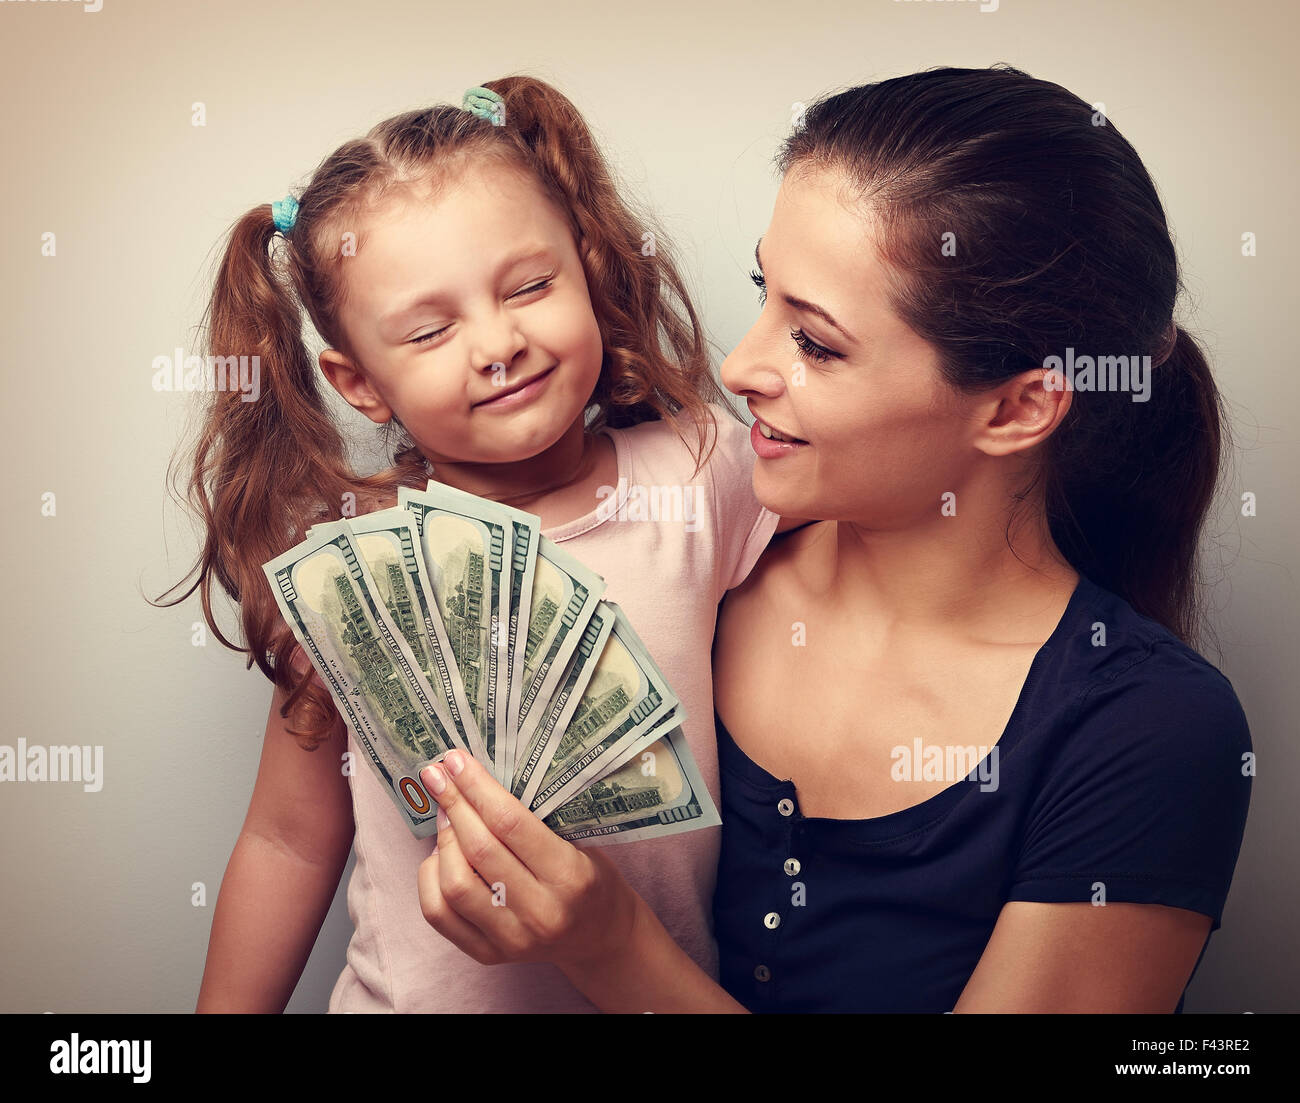 Smiling mother looking on happy daughter holding cash of dollars. Vintage closeup portrait Stock Photo